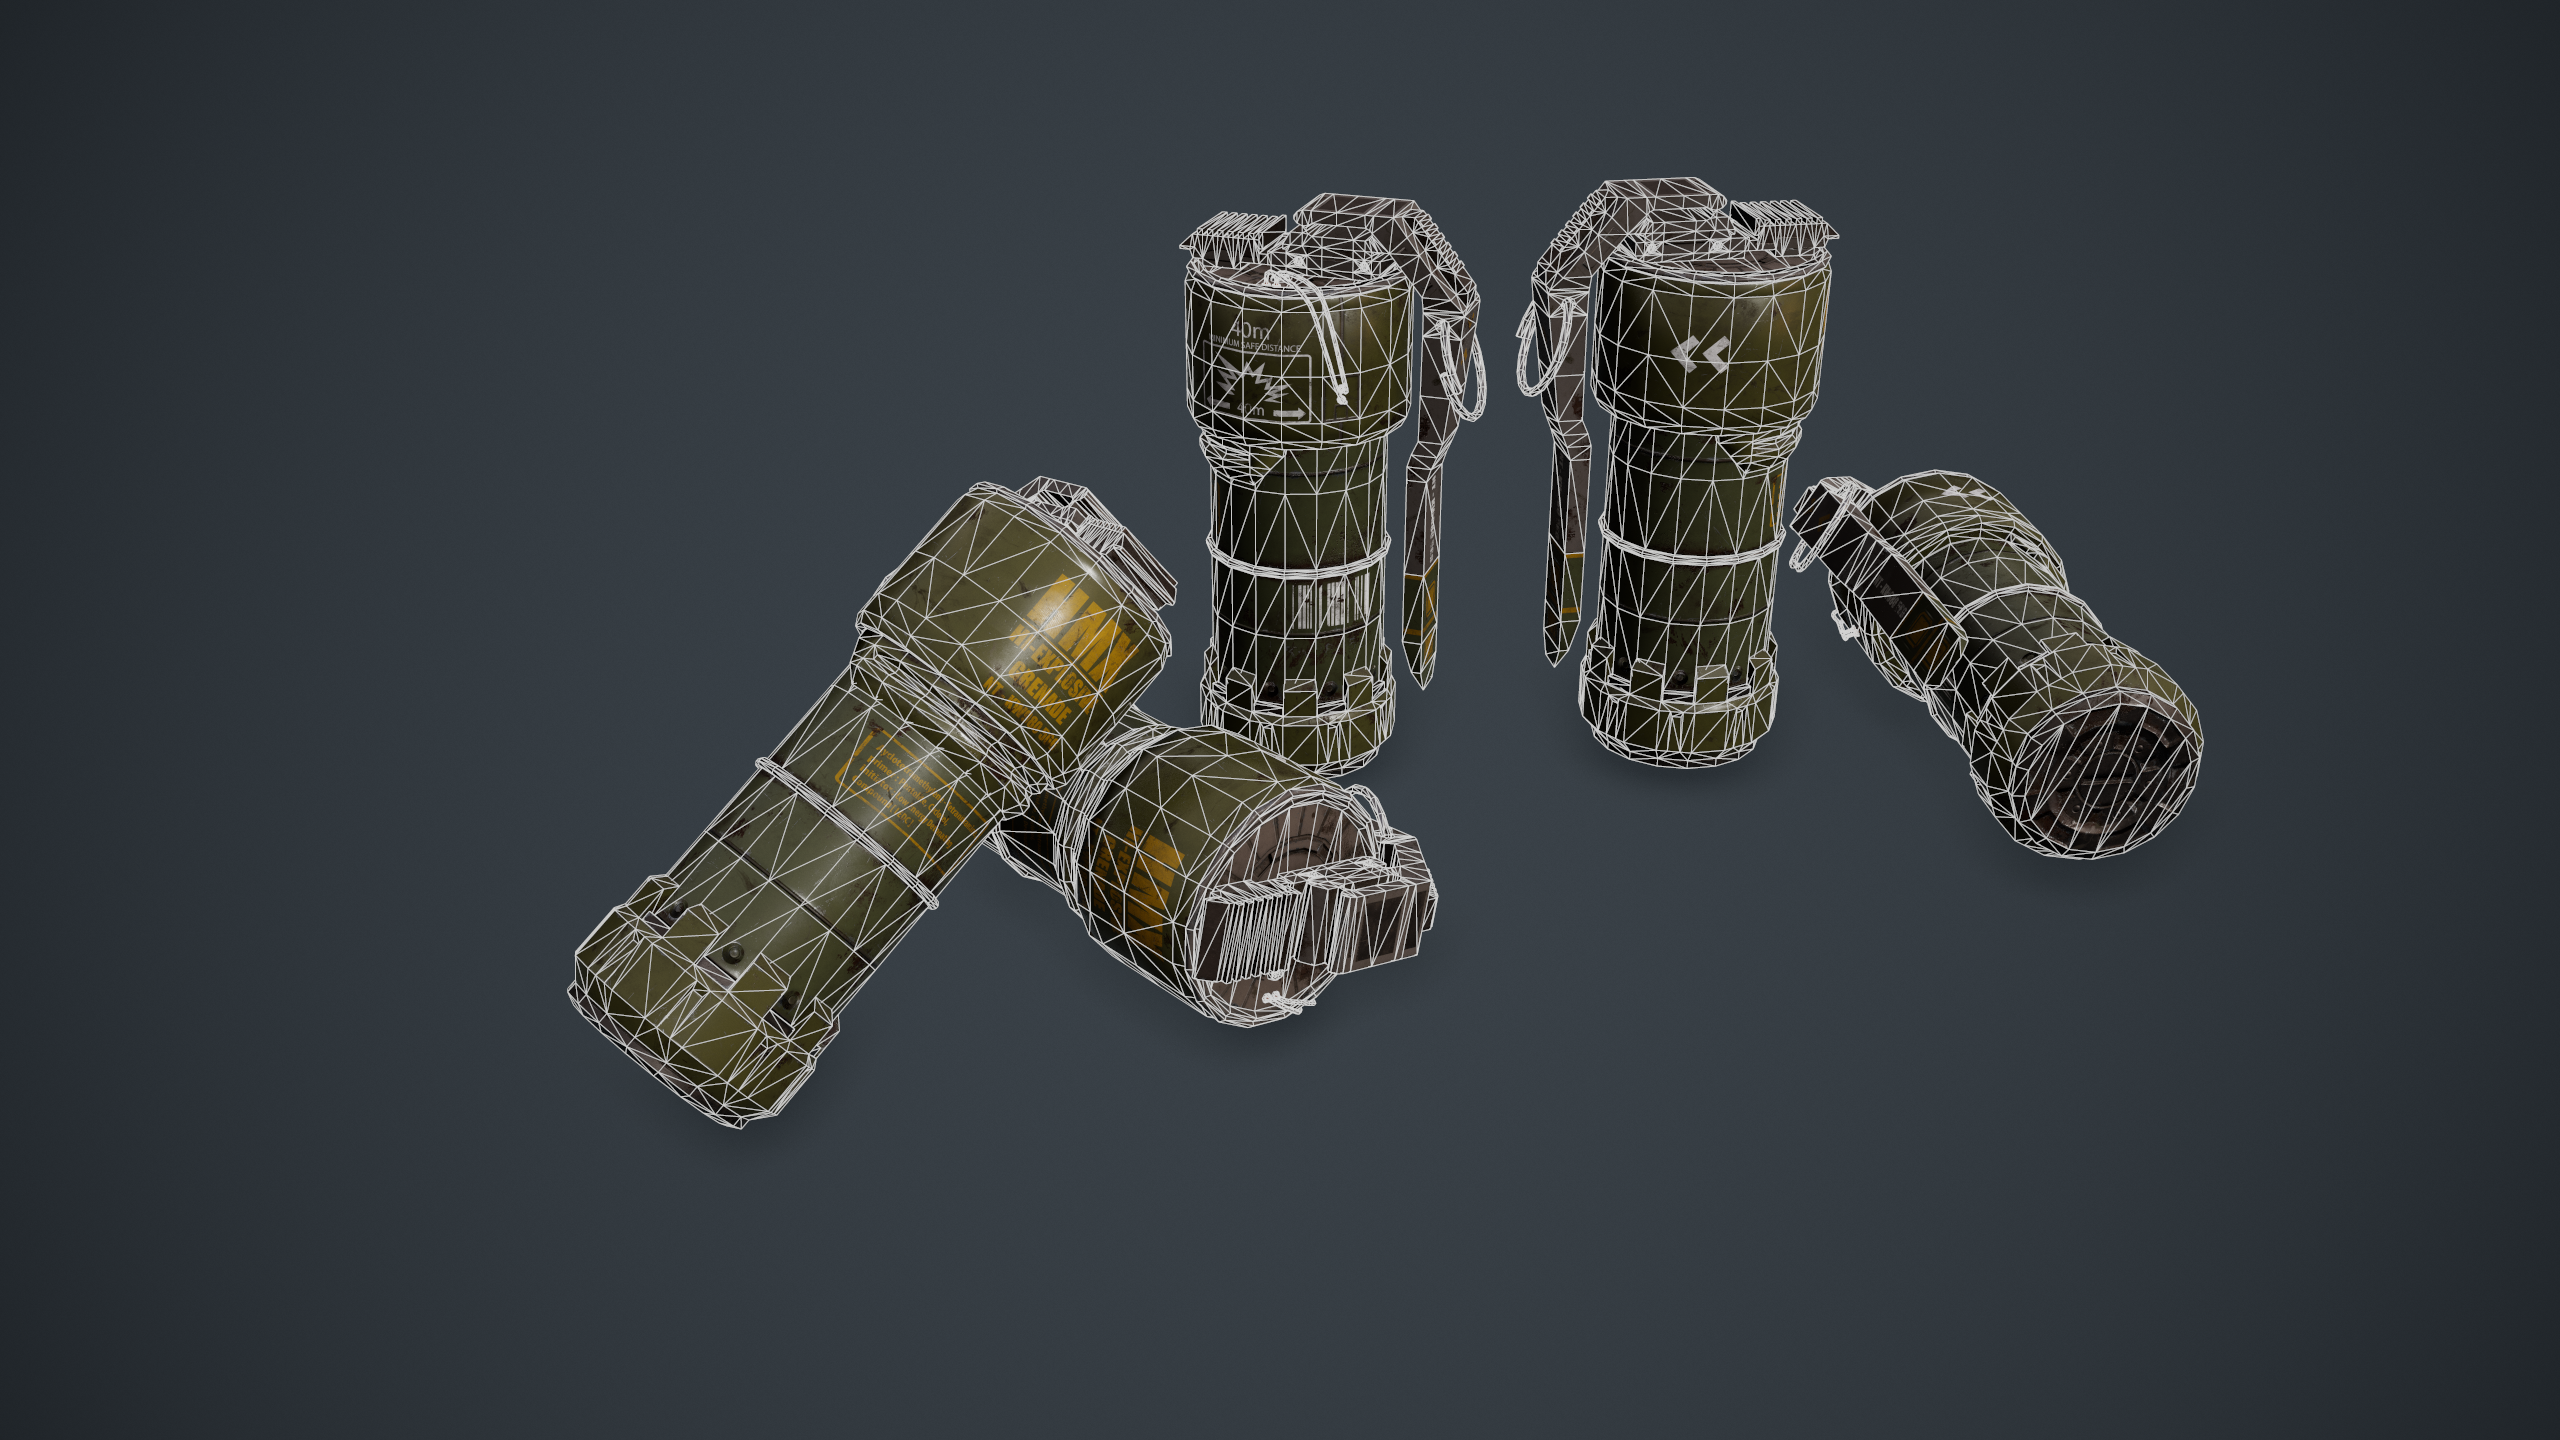 Wireframe shot of the sci-fi grenade, rendered in Marmoset Toolbag